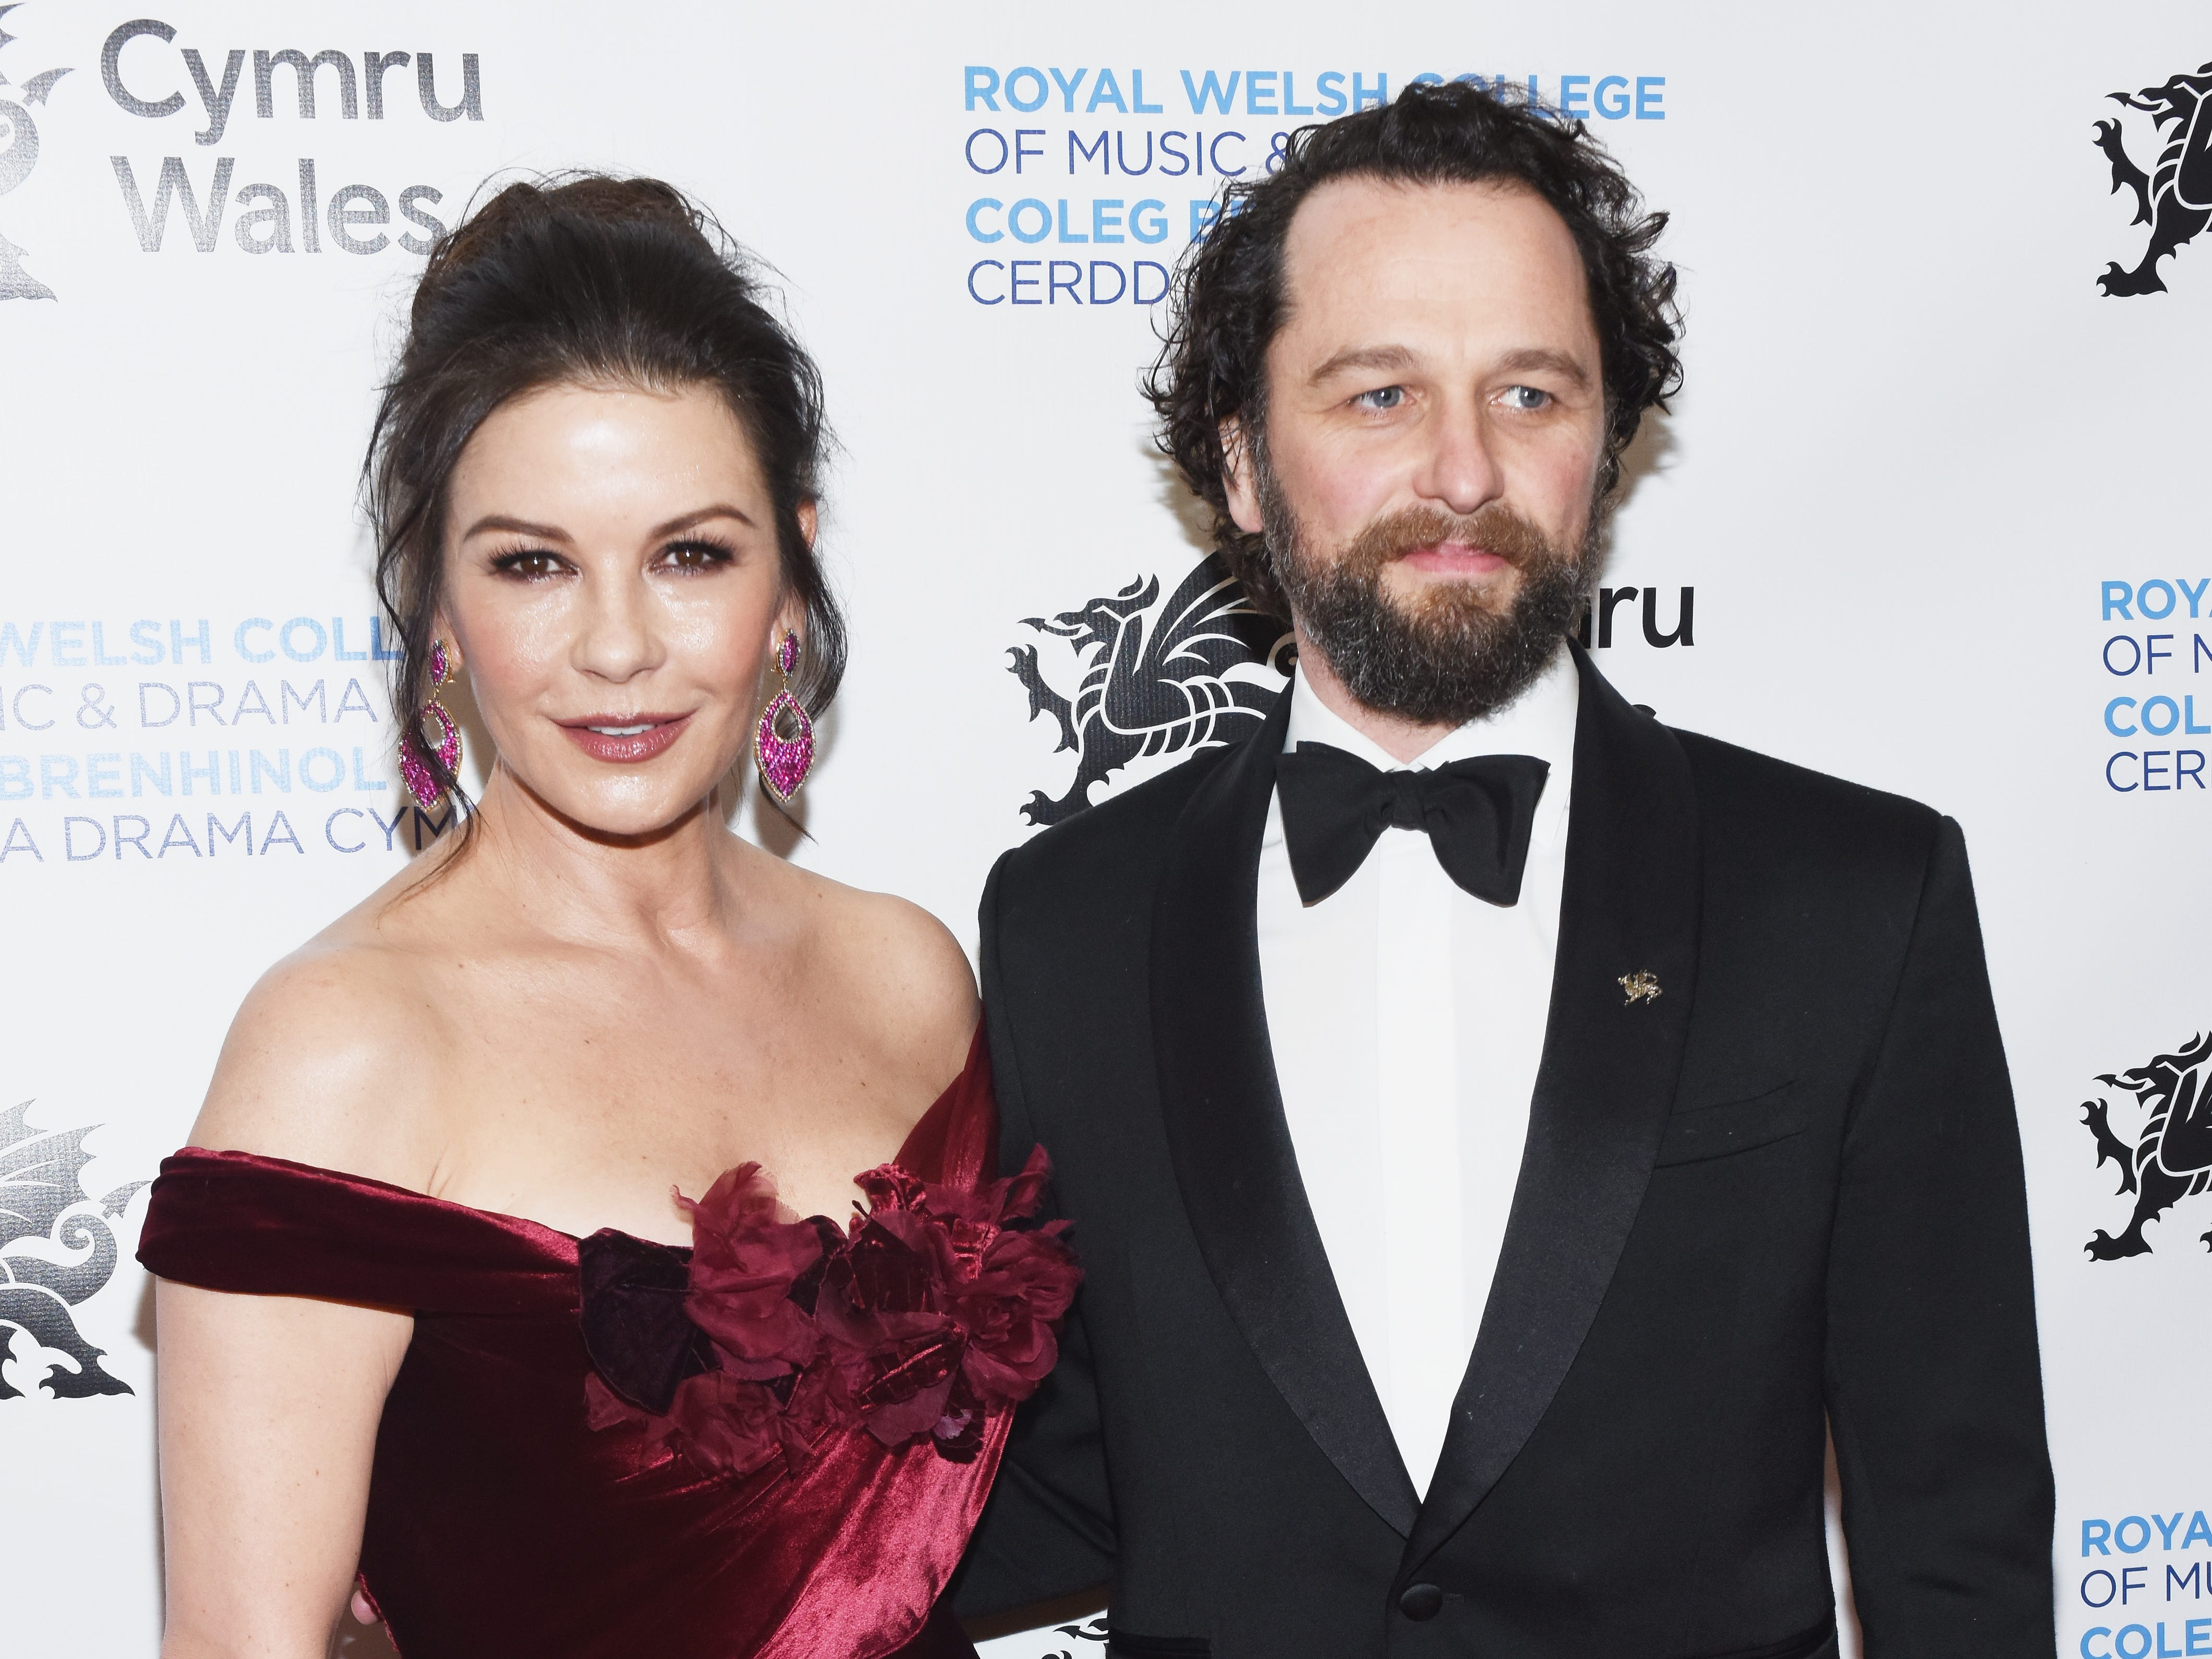 "Catherine Zeta-Jones and ""The Americans"" star Matthew Rhys represent their homeland of Wales at the the Royal Welsh College of Music & Drama 2019 Gala, held March 1, 2019, in New York."